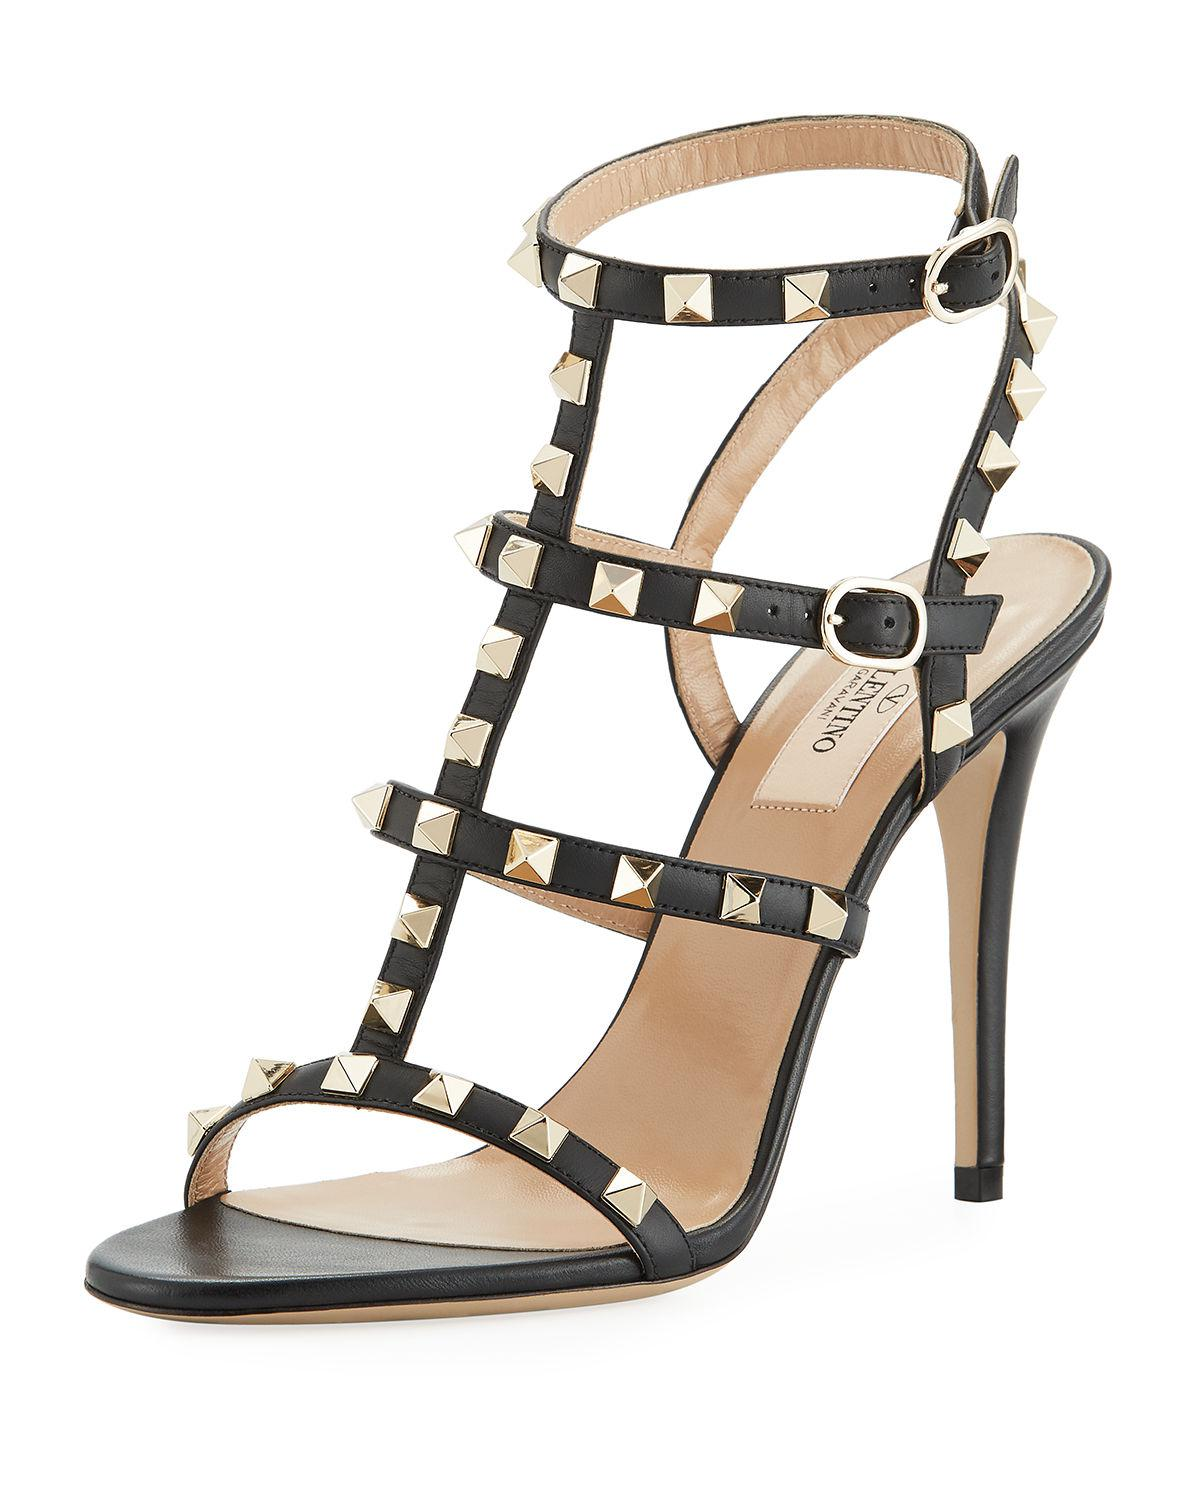 35afb2e553c5 Lyst - Valentino Rockstud 105mm Caged Leather Sandals in Black ...